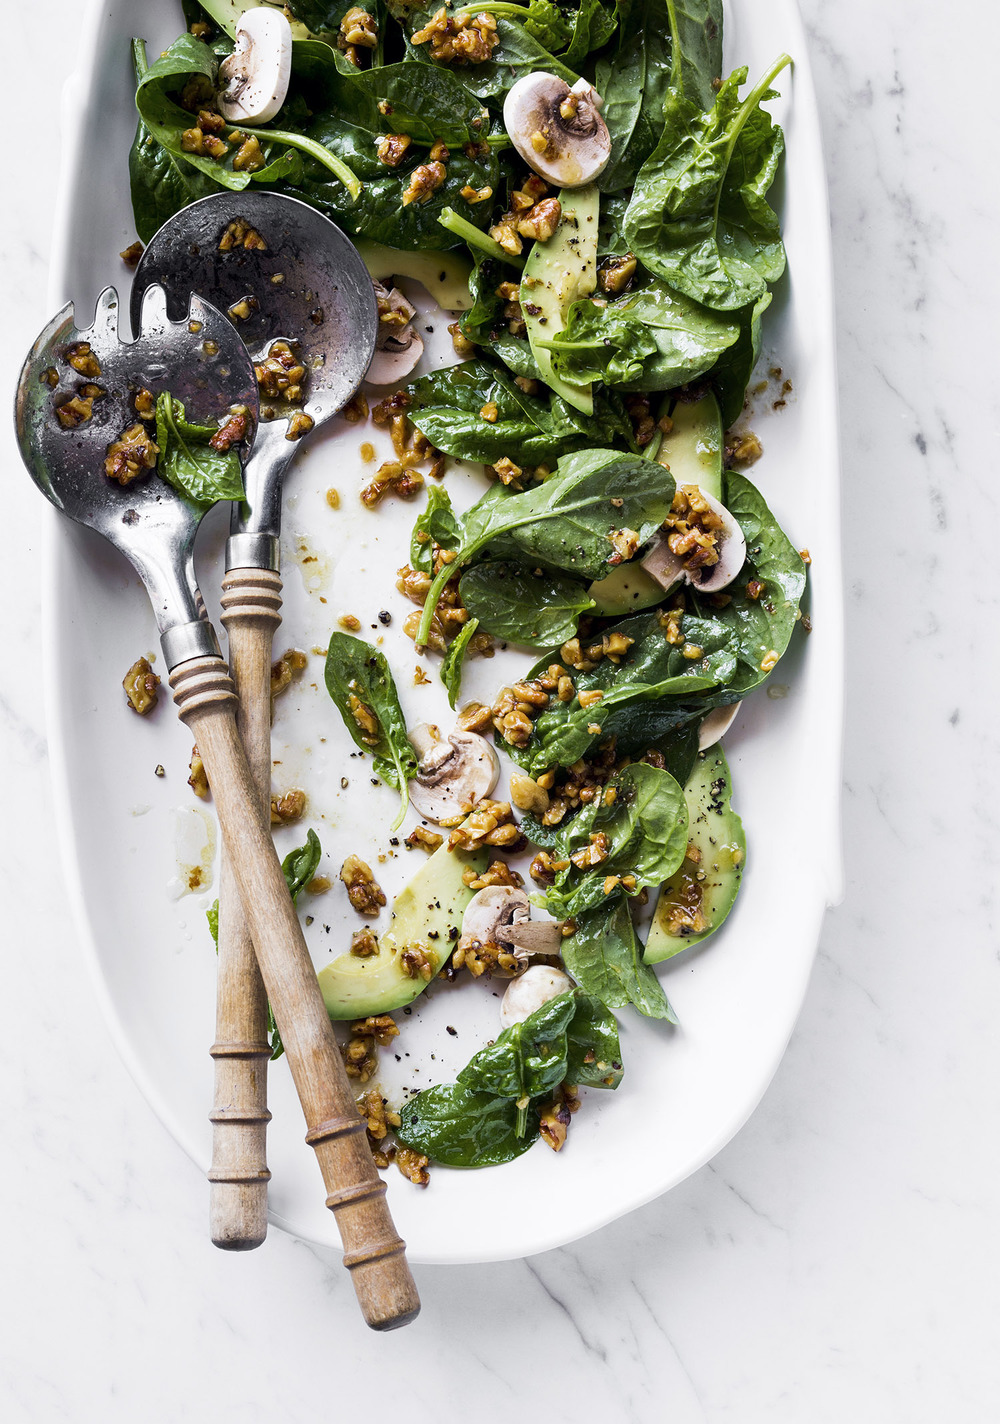 Spinach_SaladWalnutDressing-010_V1_final.jpg